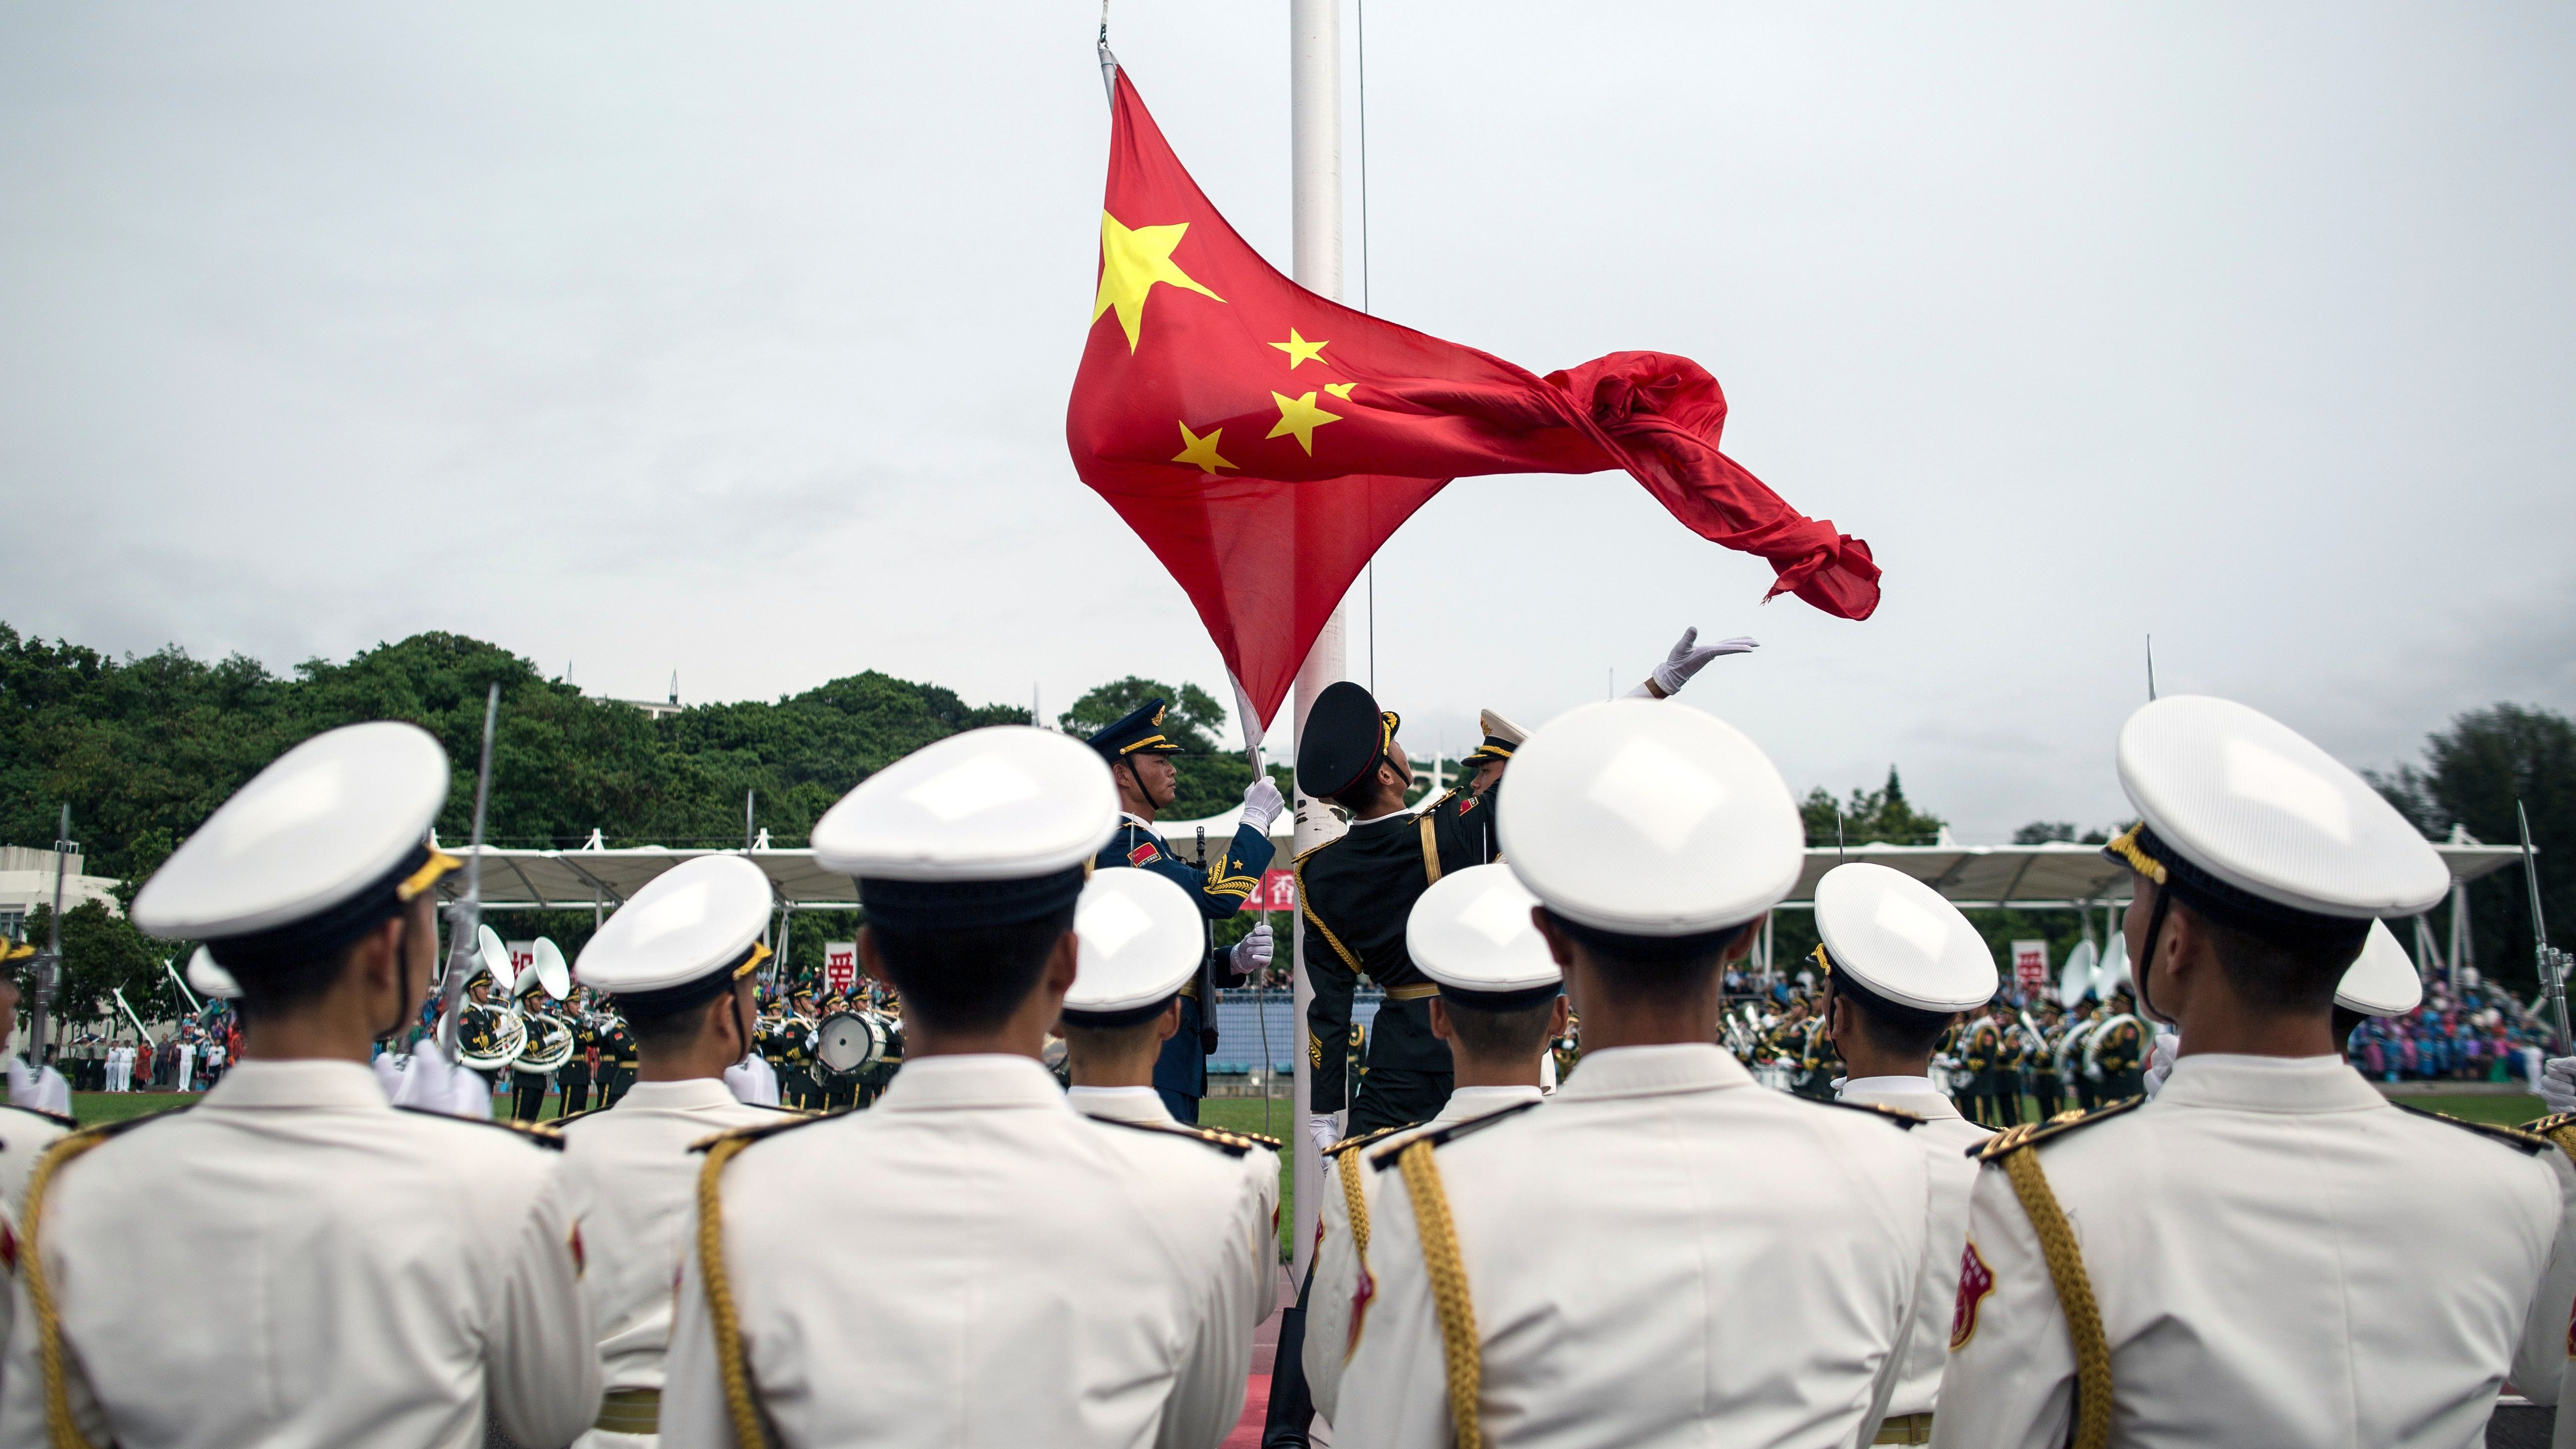 People's Liberation Army (PLA) soldiers participate in a flag raising ceremony during an open day at the PLA navy base in Hong Kong, China, 08 July 2017. The Hong Kong Garrison of the Chinese People's Liberation Army held an open day a day after the Liaoning, the first aircraft carrier commissioned into China's military, arrived in the city. The People's Liberation Army Forces in Hong Kong comprises around 6,000 personnel.